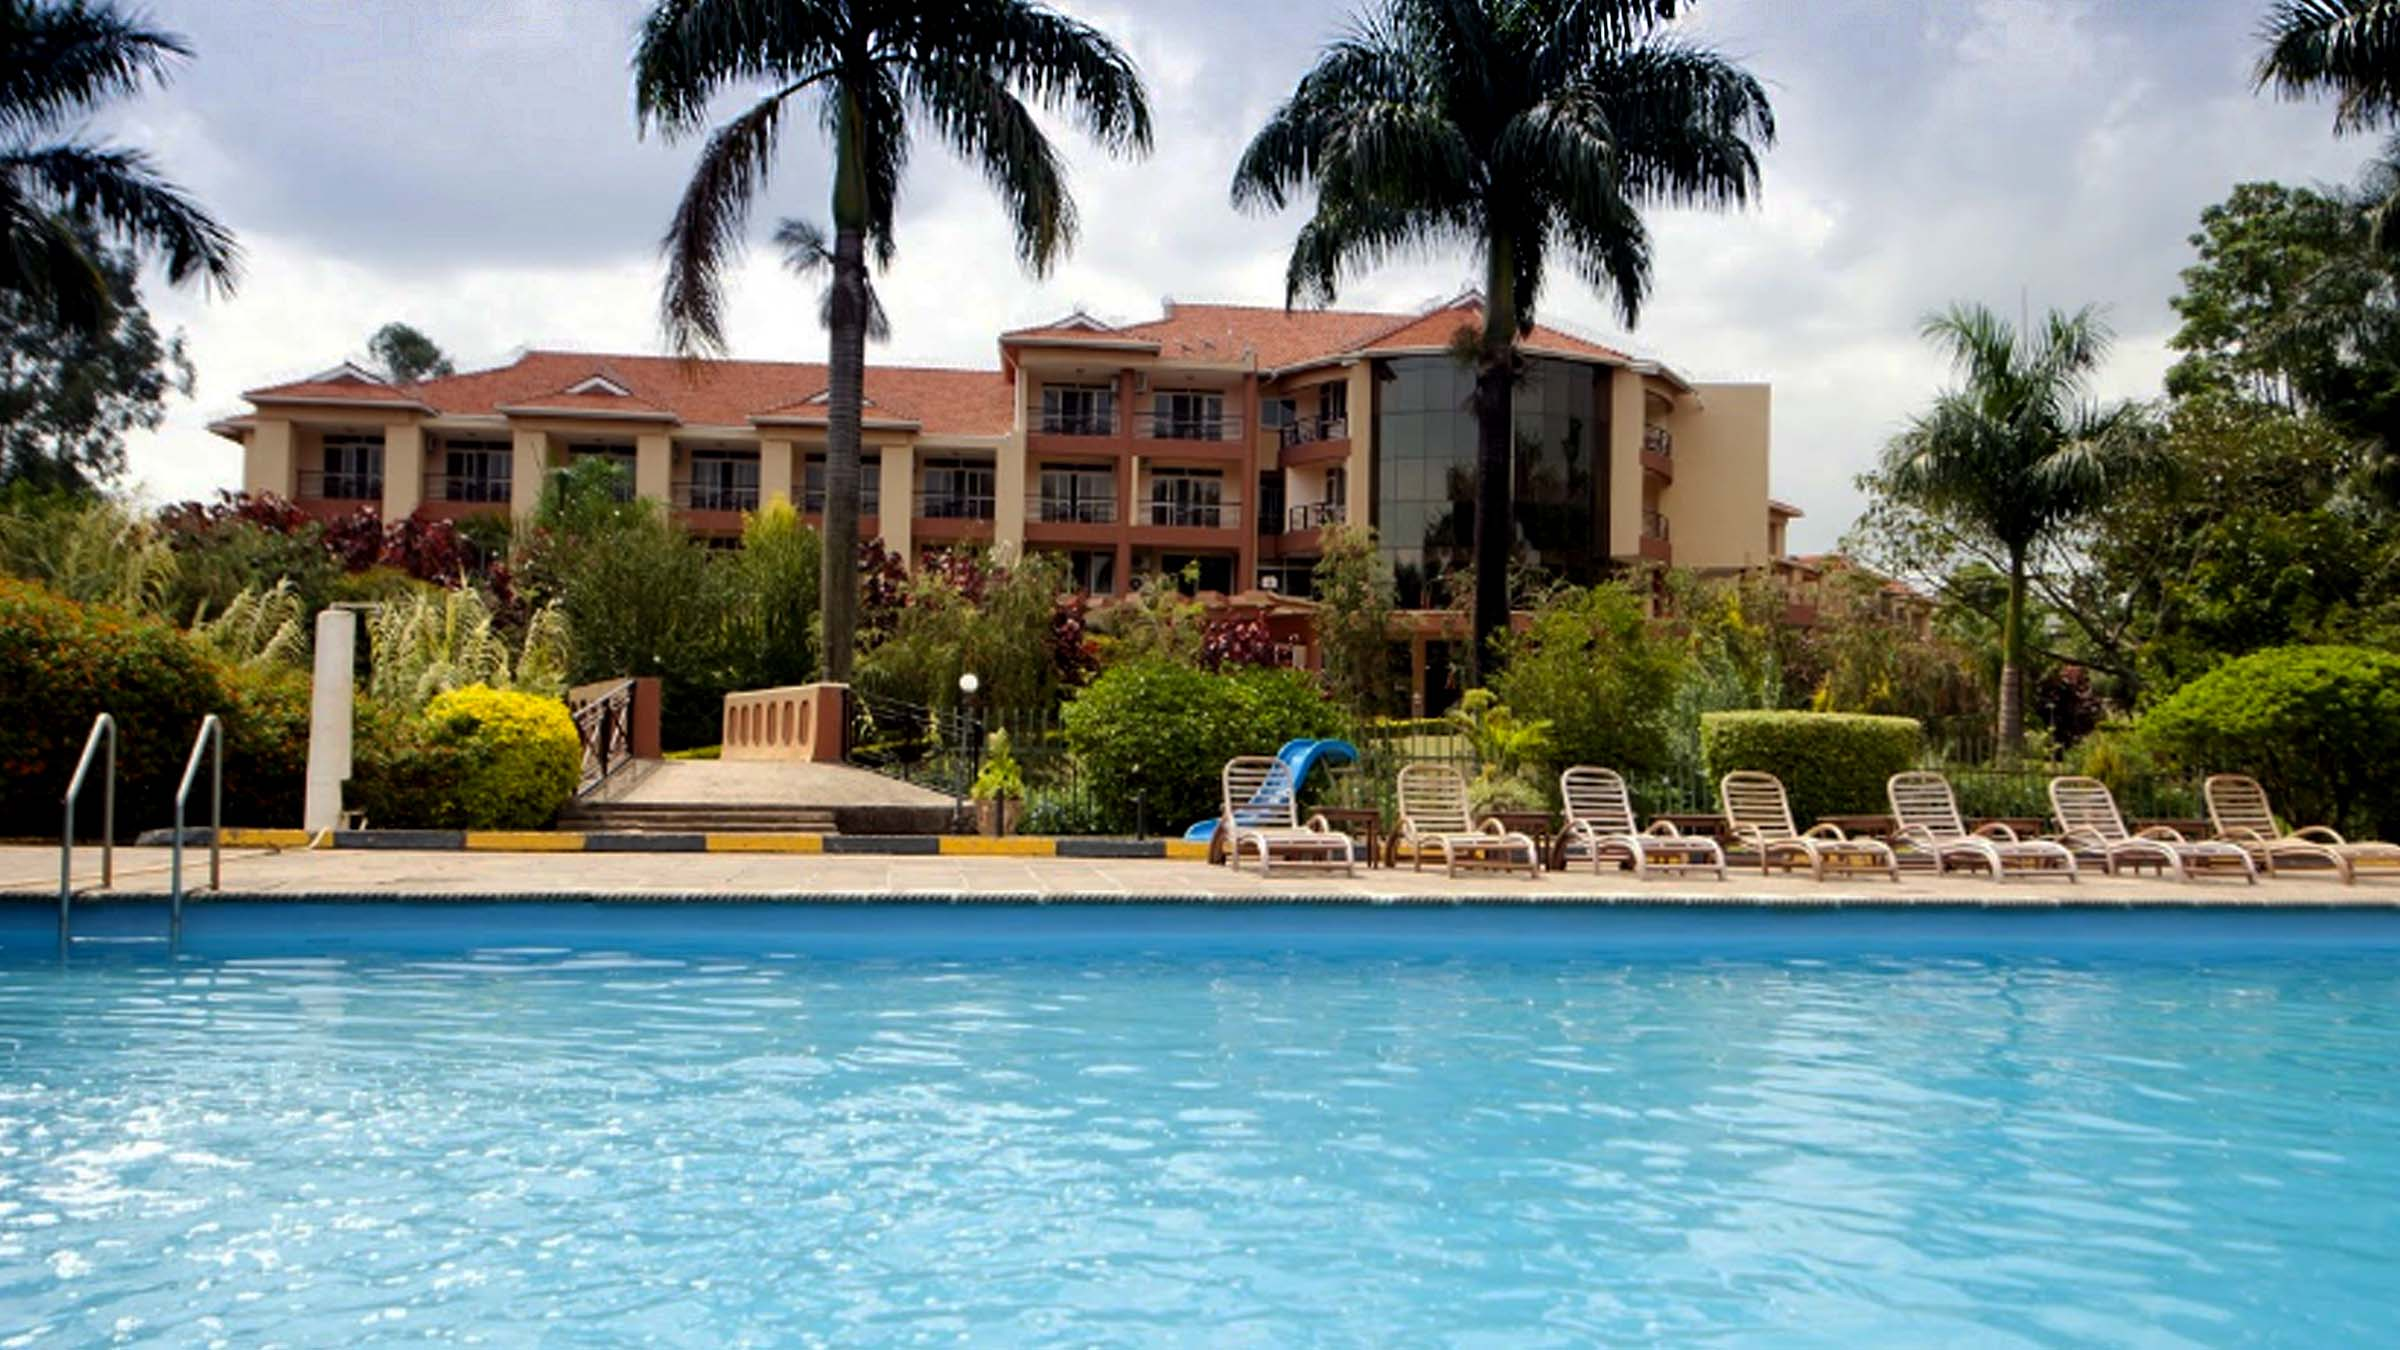 Hotels and Lodges in Mbale Town - Mbale Resort Hotel